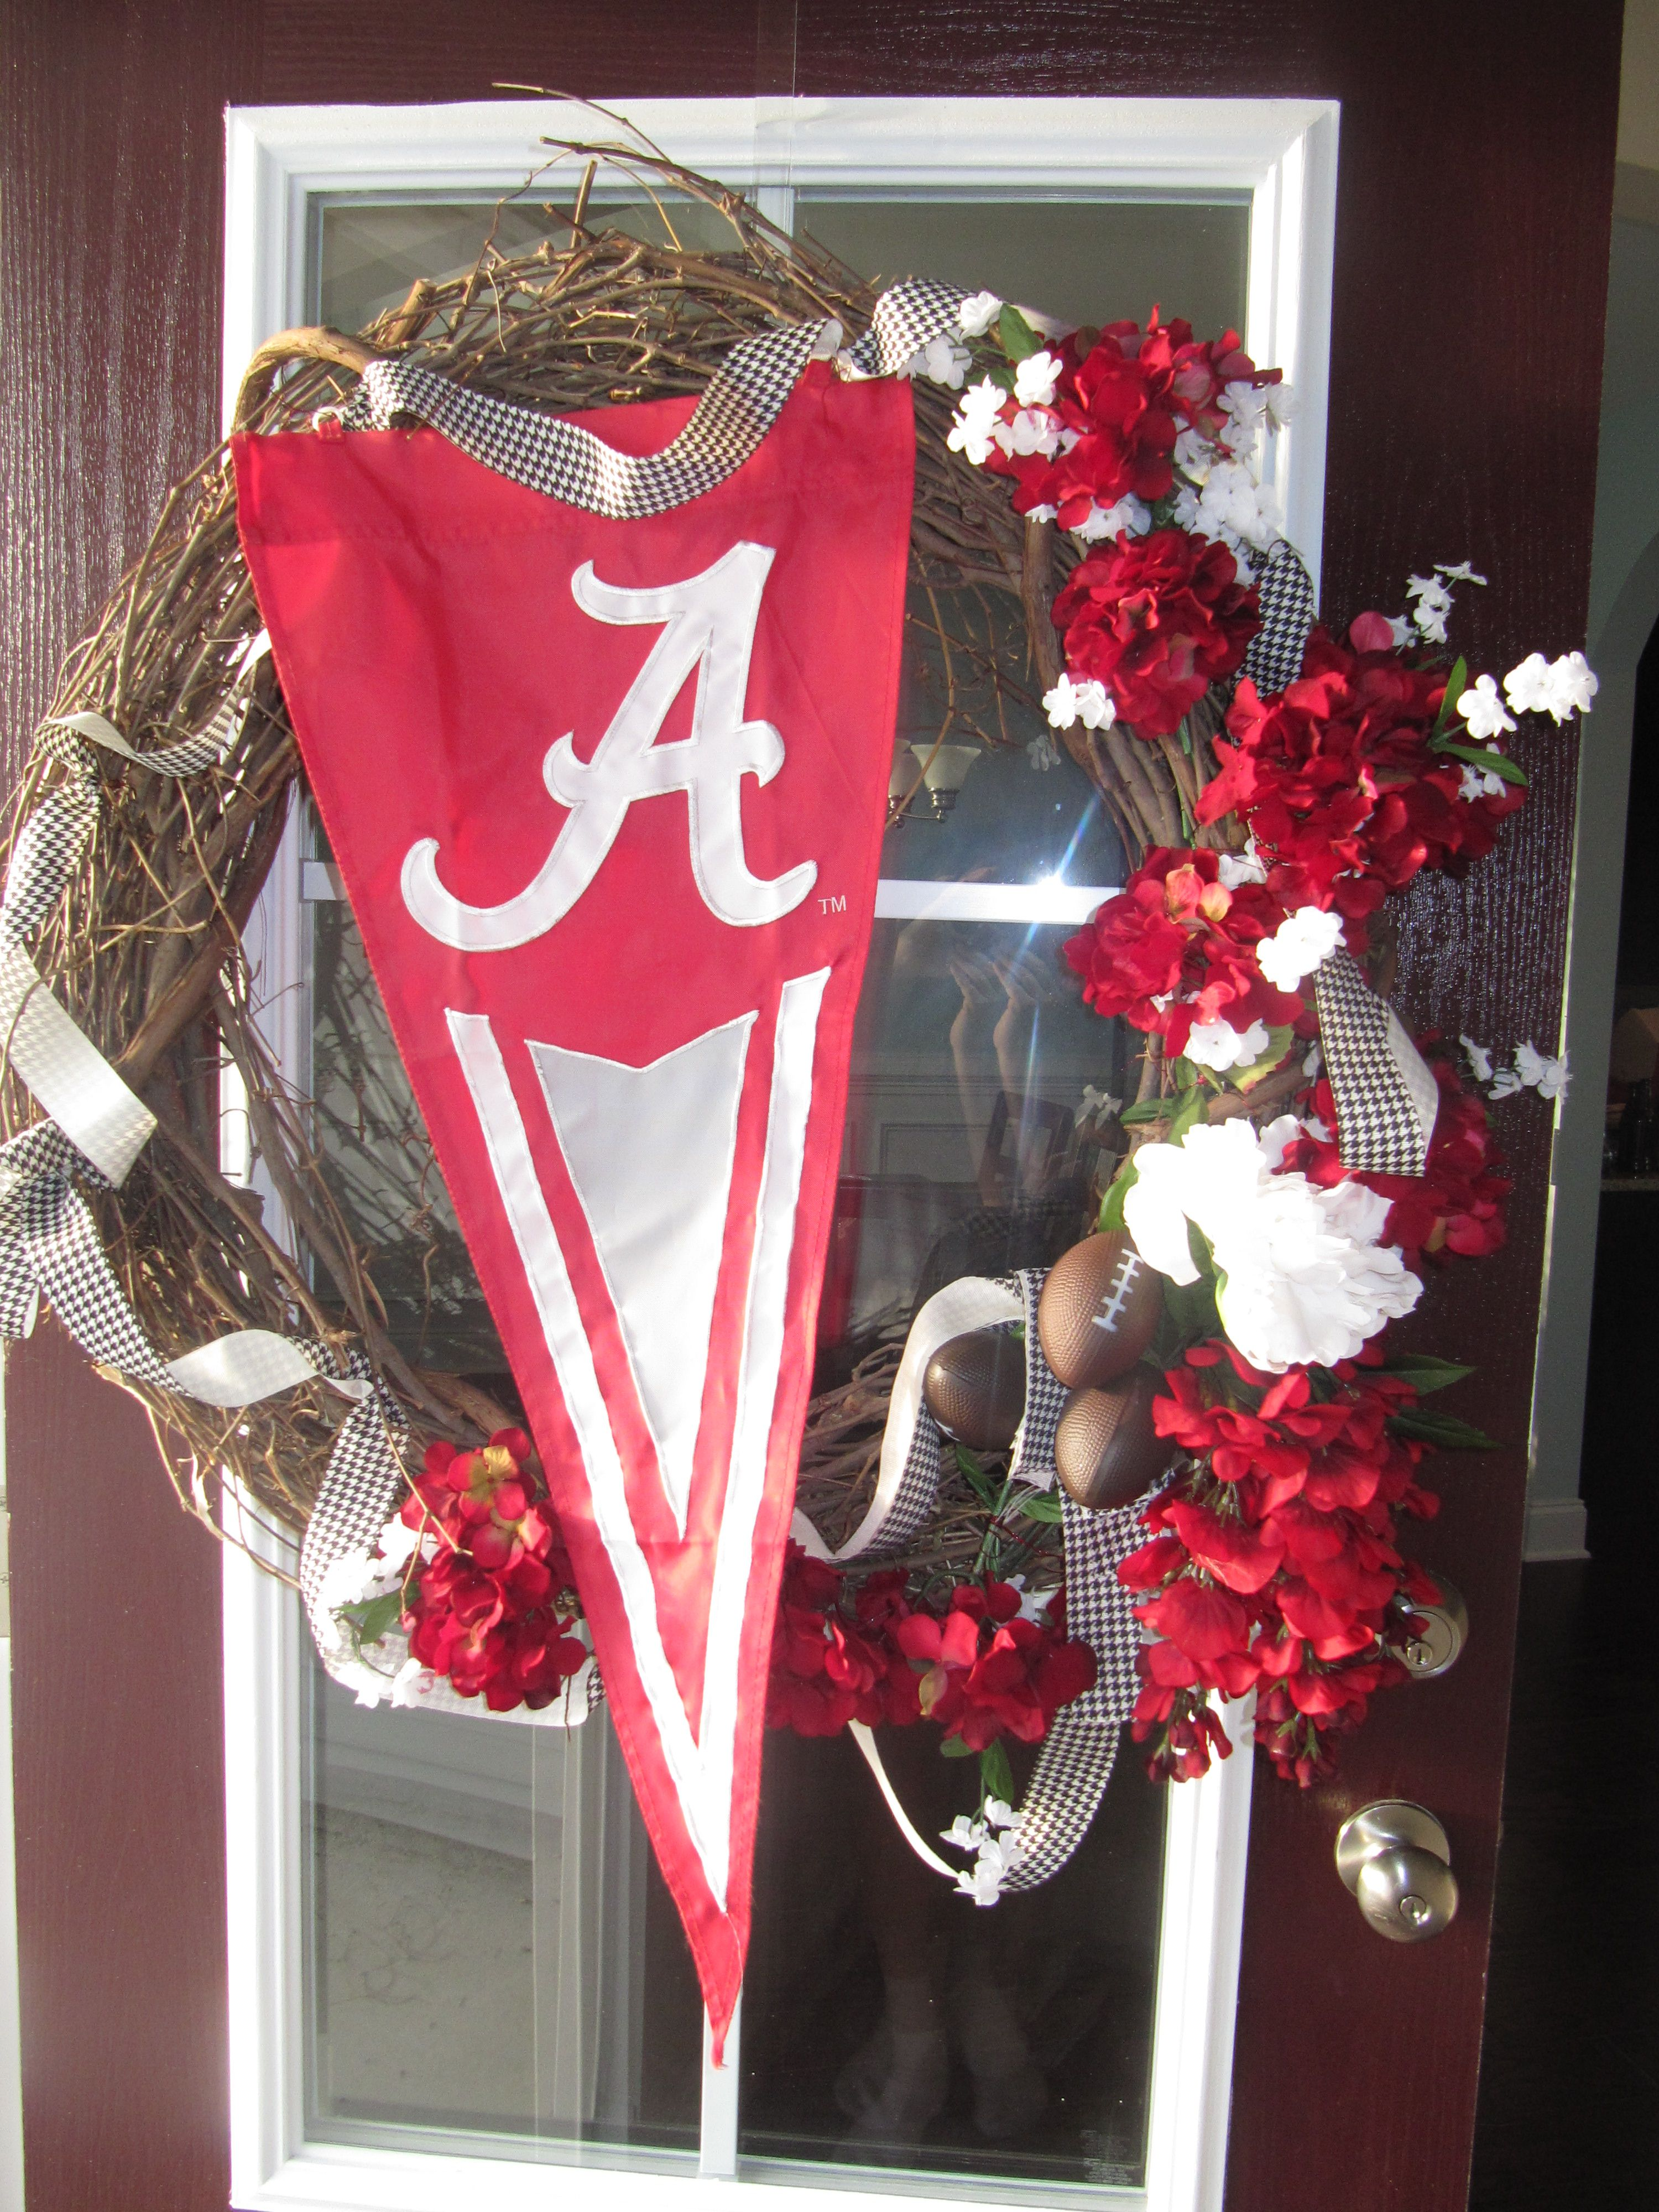 Roll Tide Roll!! My opening season wreath.  It was a wonderful way to welcome my guests to our college football party!  And I made it all by myself!